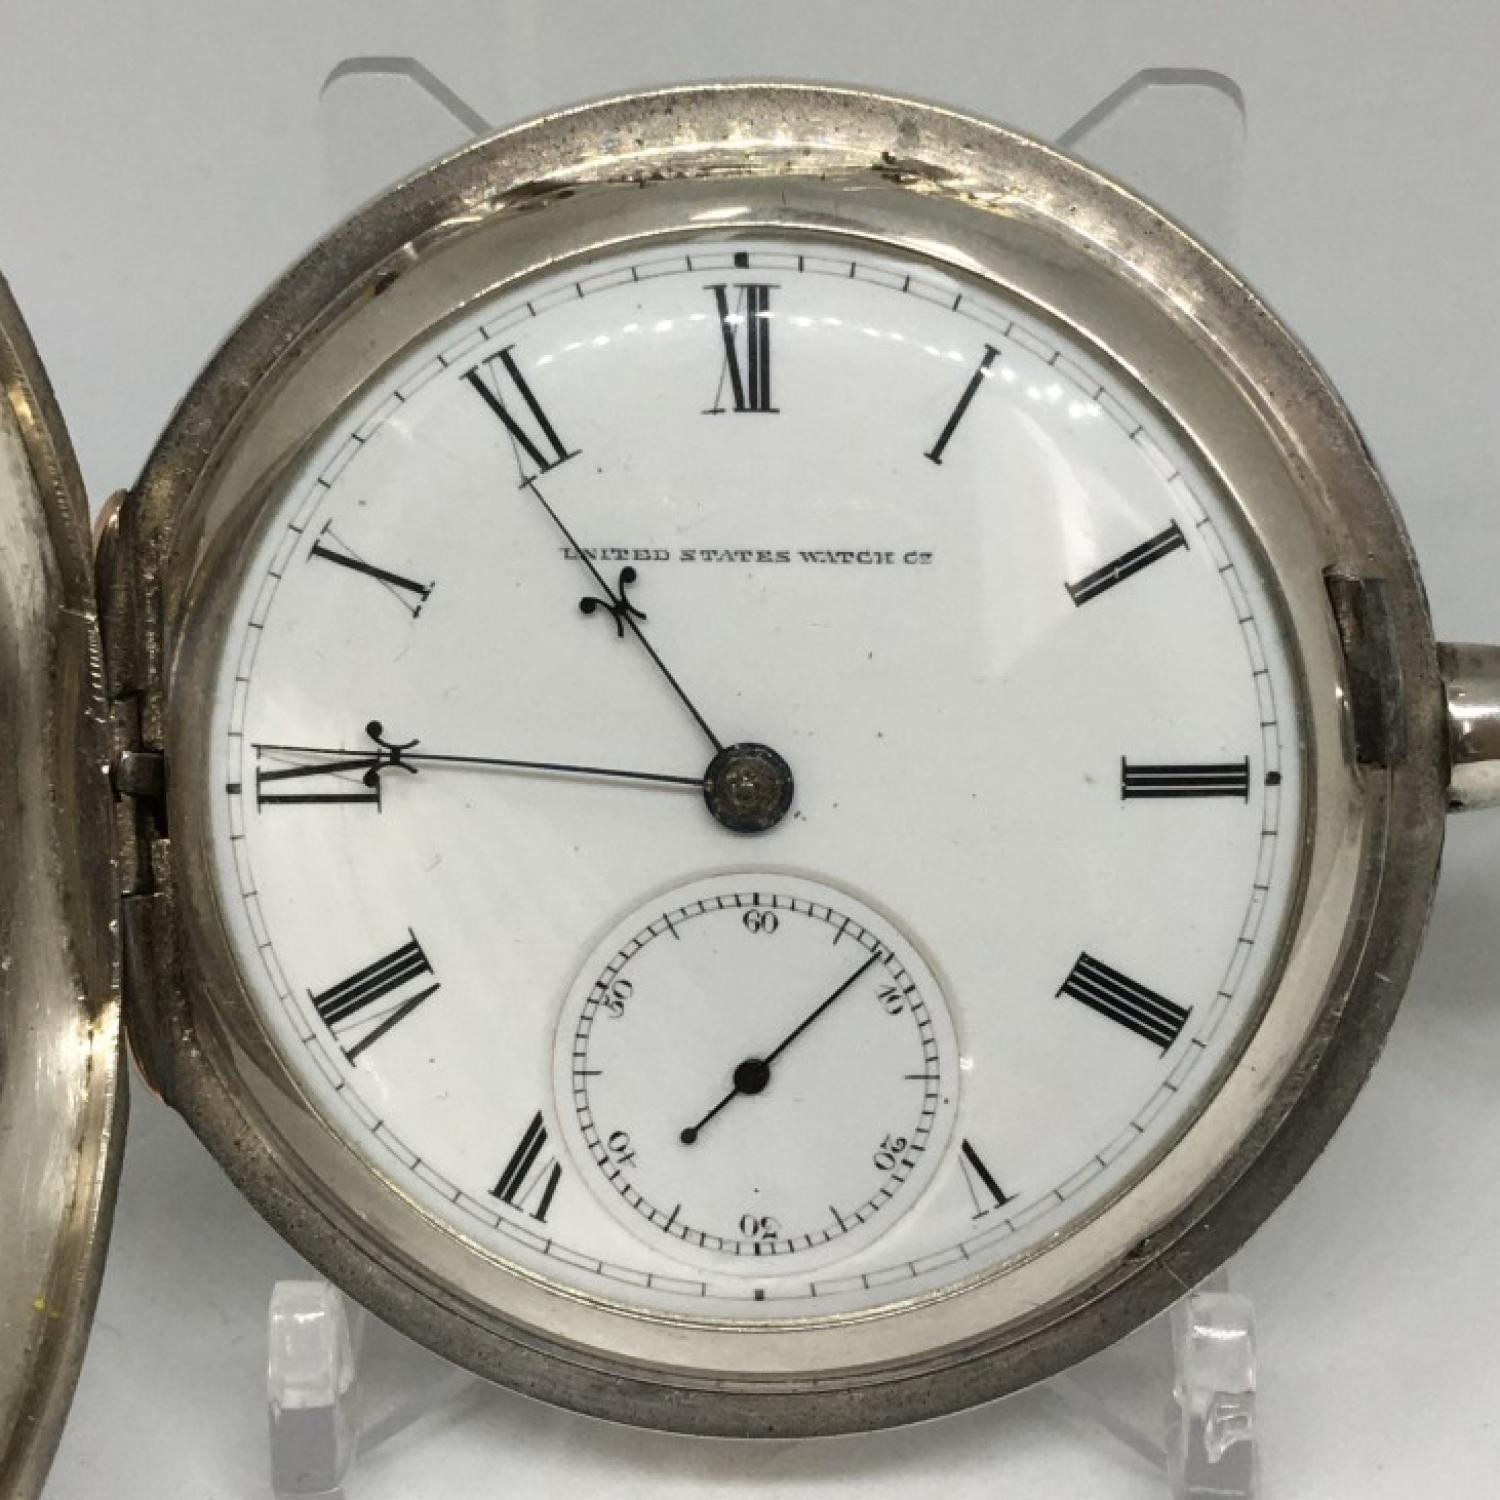 Image of U.S. Watch Co. (Marion, NJ) George Channing #15267 Dial